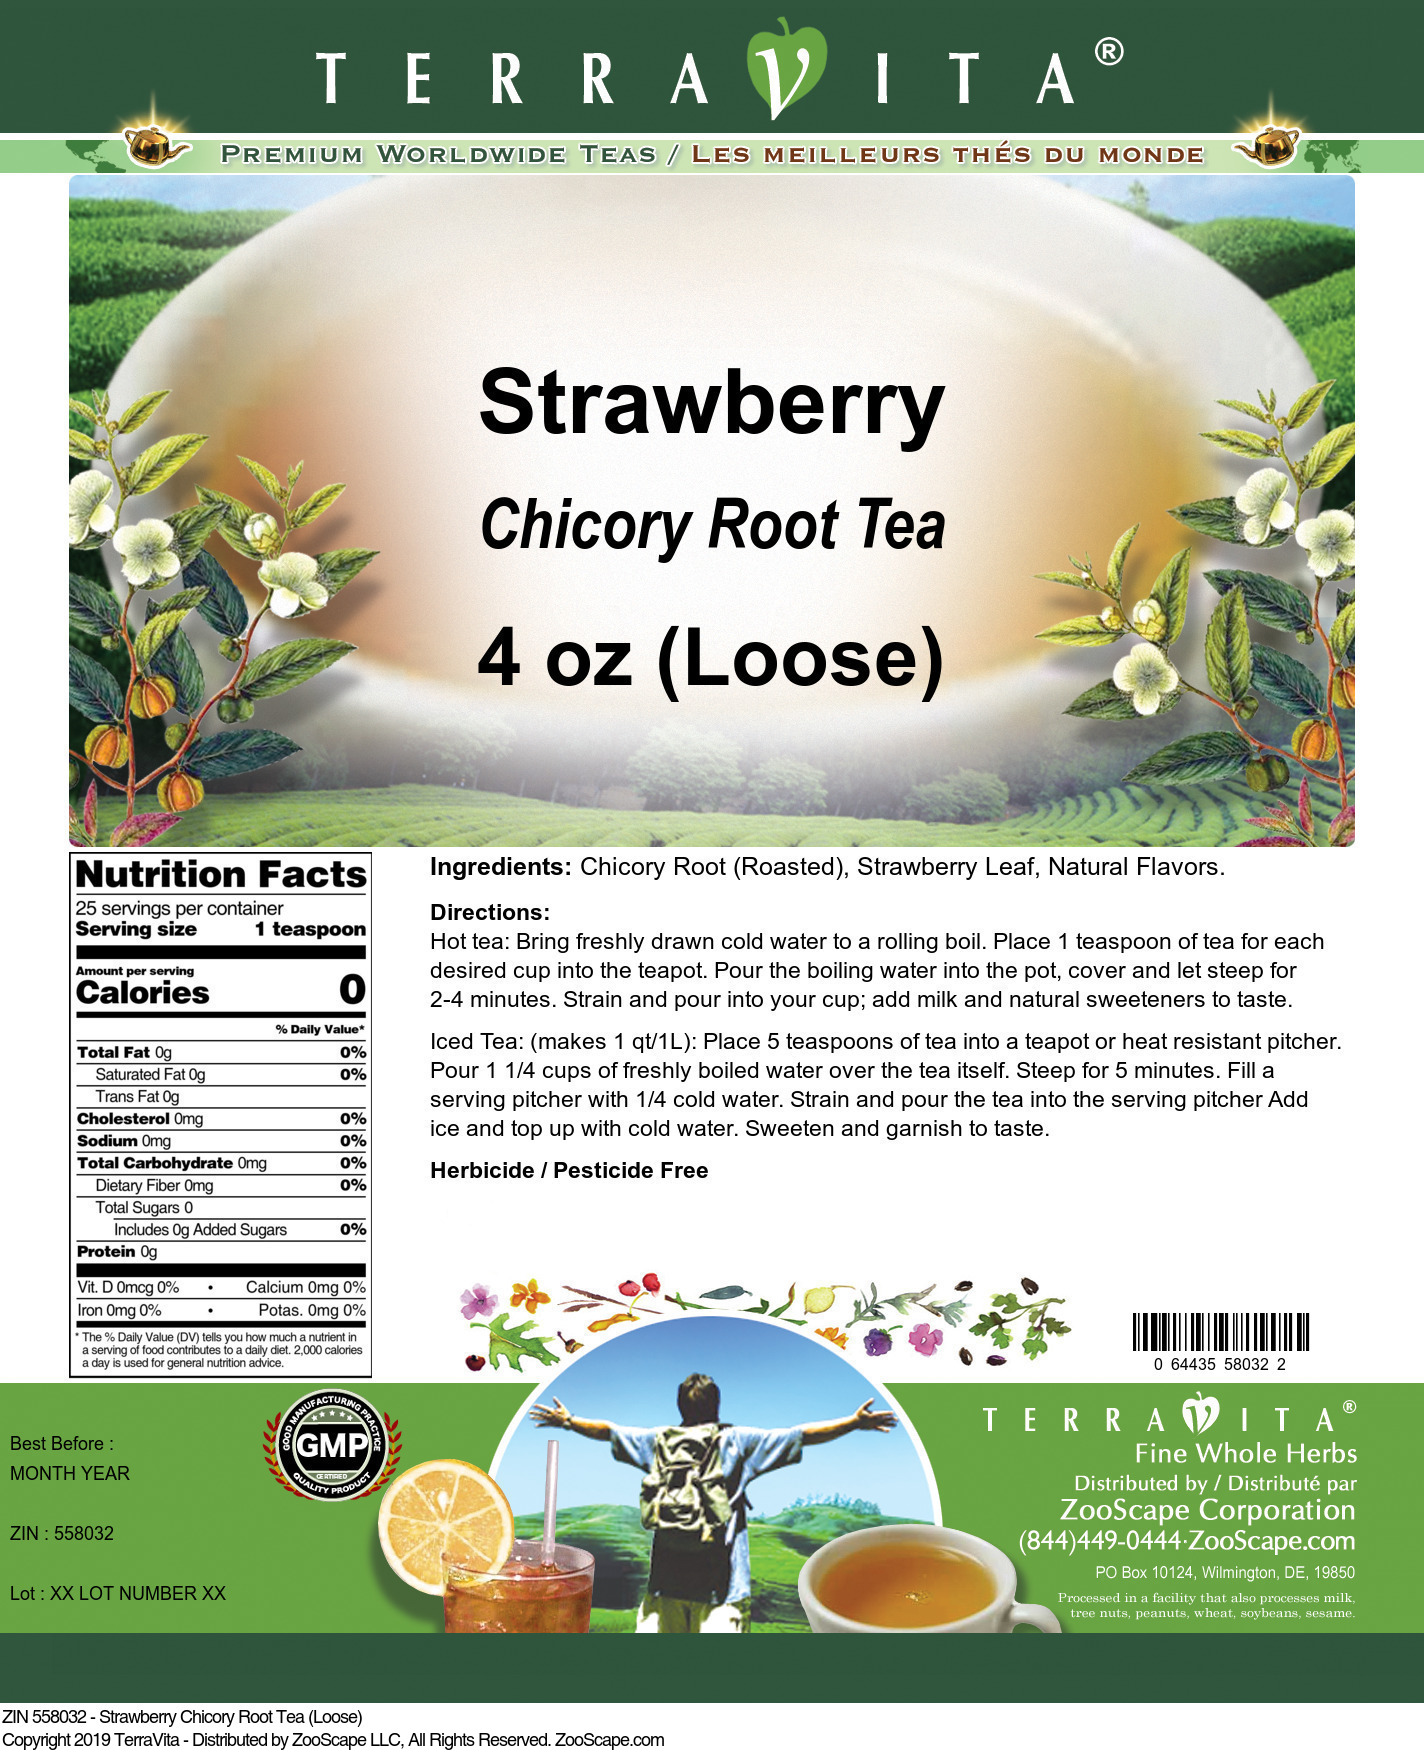 Strawberry Chicory Root Tea (Loose)